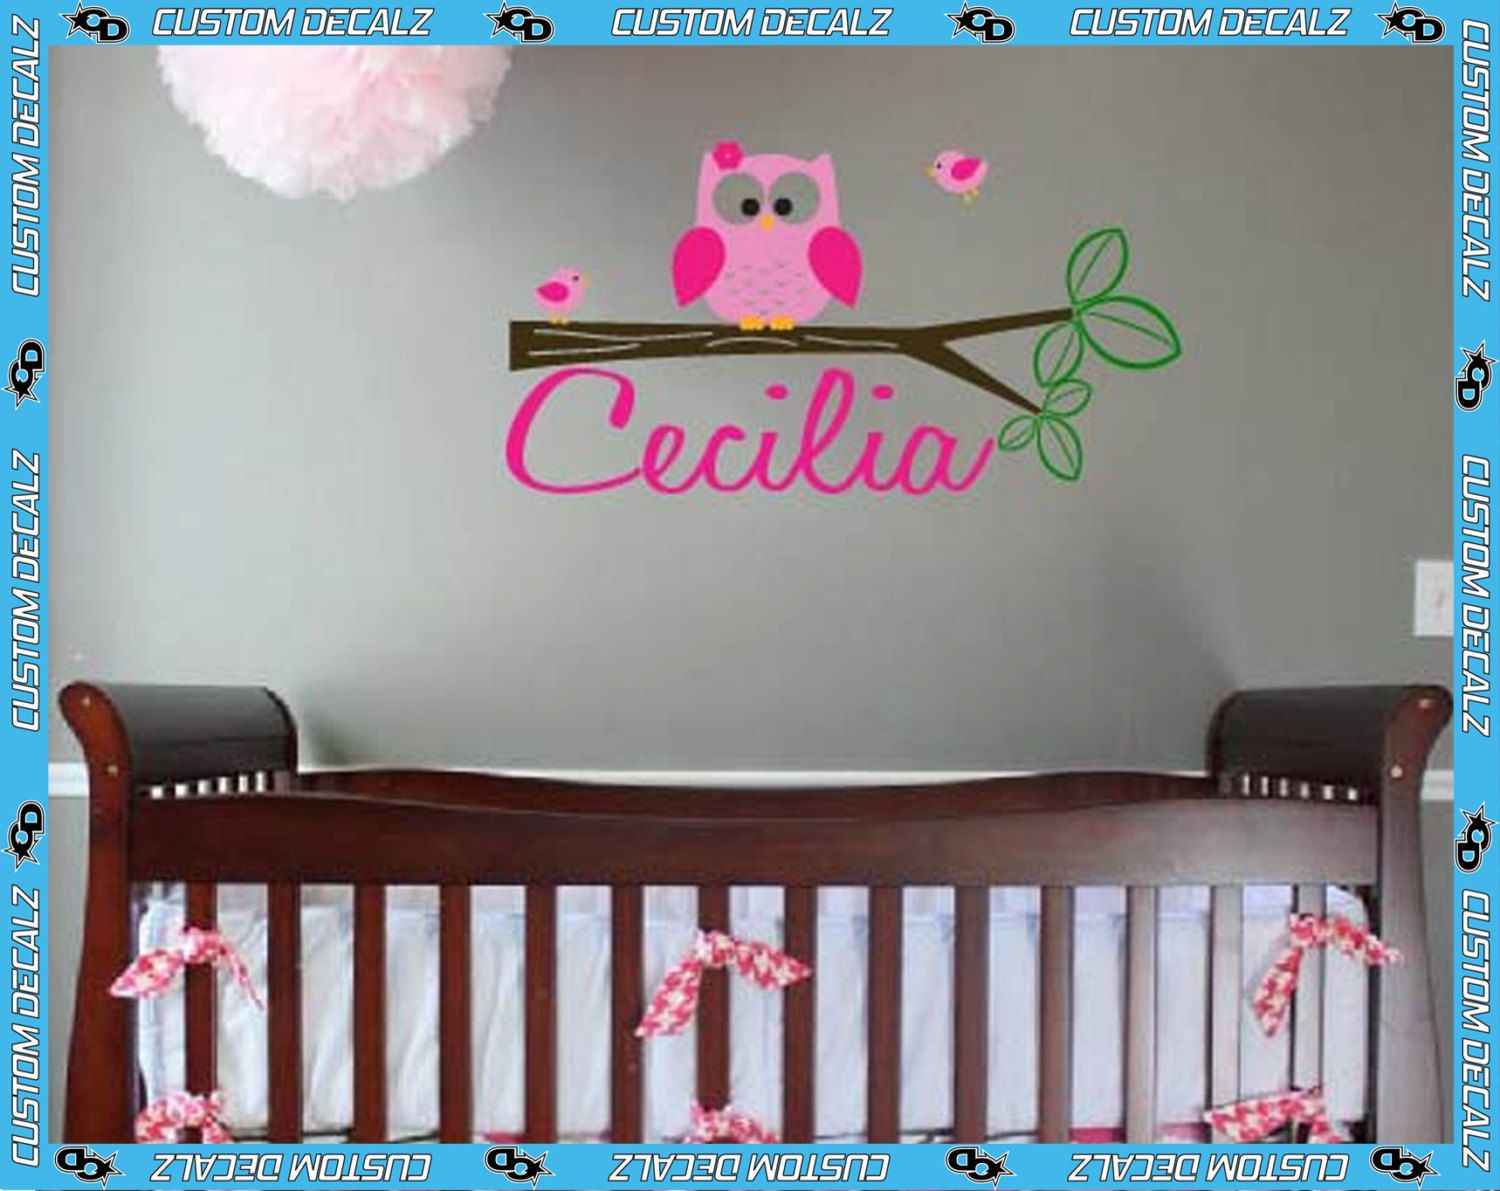 Owl wall decal with personalized name vinyl wall by customdecalz